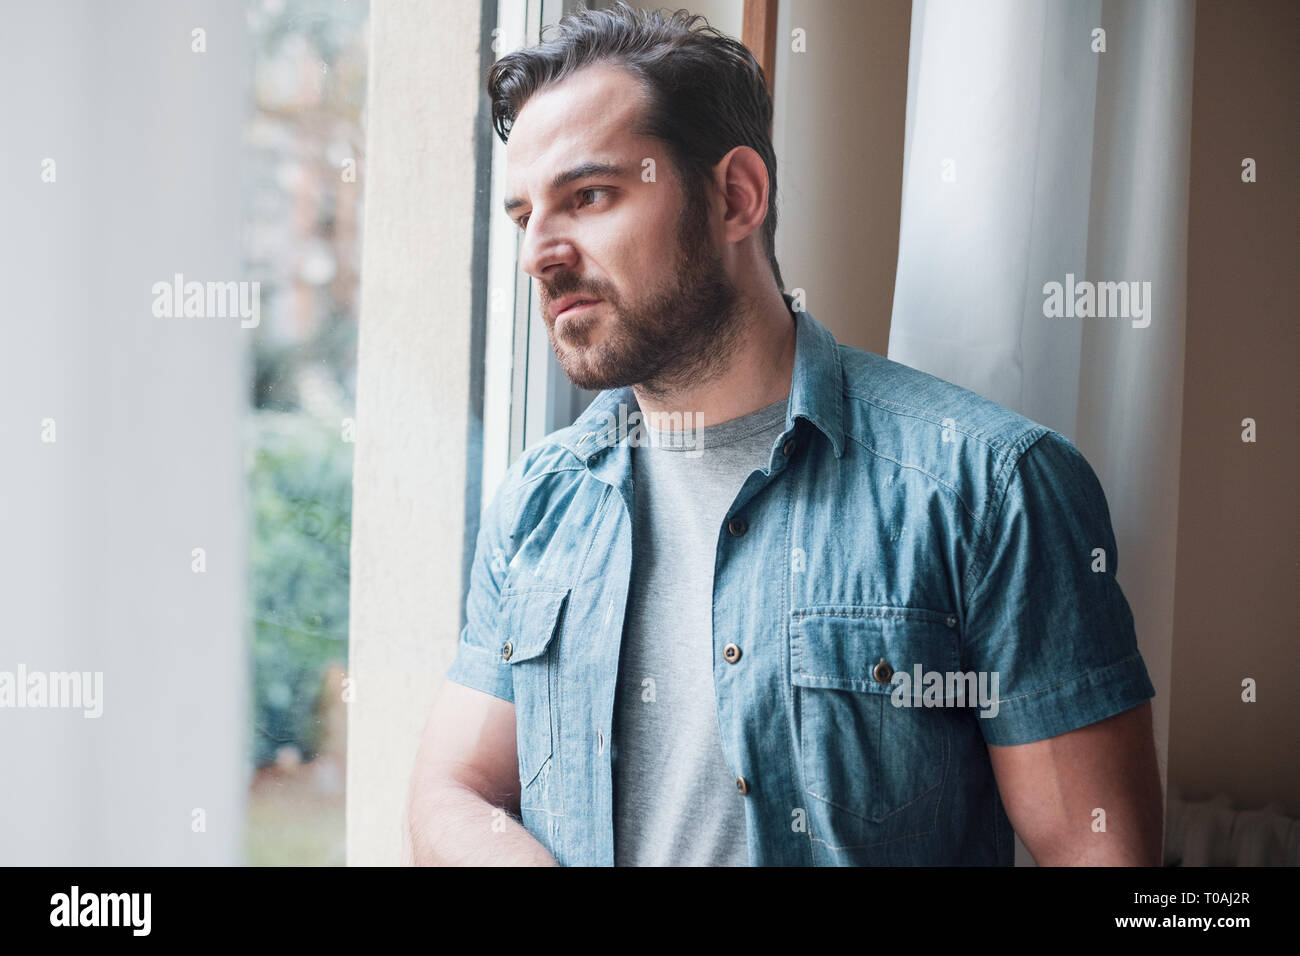 Man suffering and feeling alone at home - Stock Image